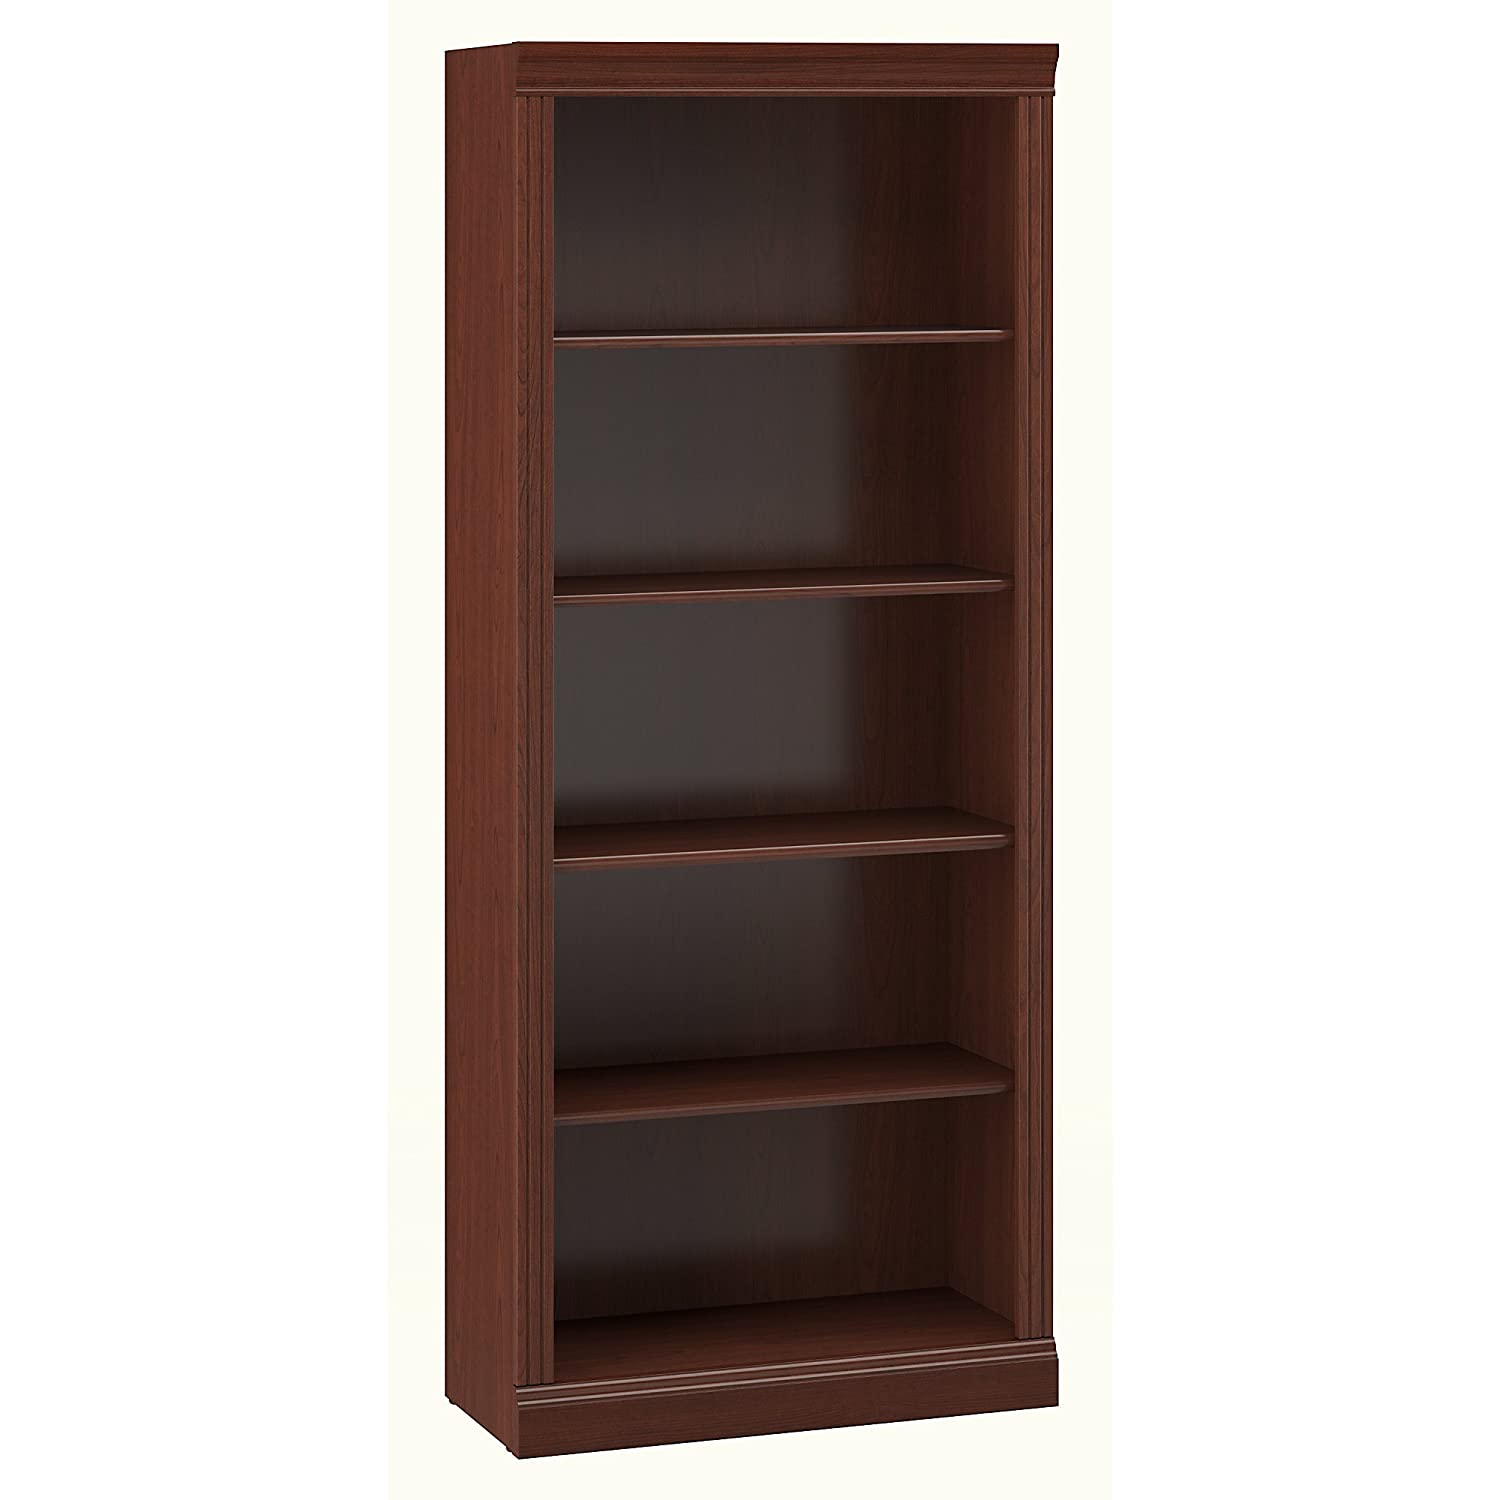 Saratoga Executive 5 Shelf Bookcase Bush Furniture W1615C-03